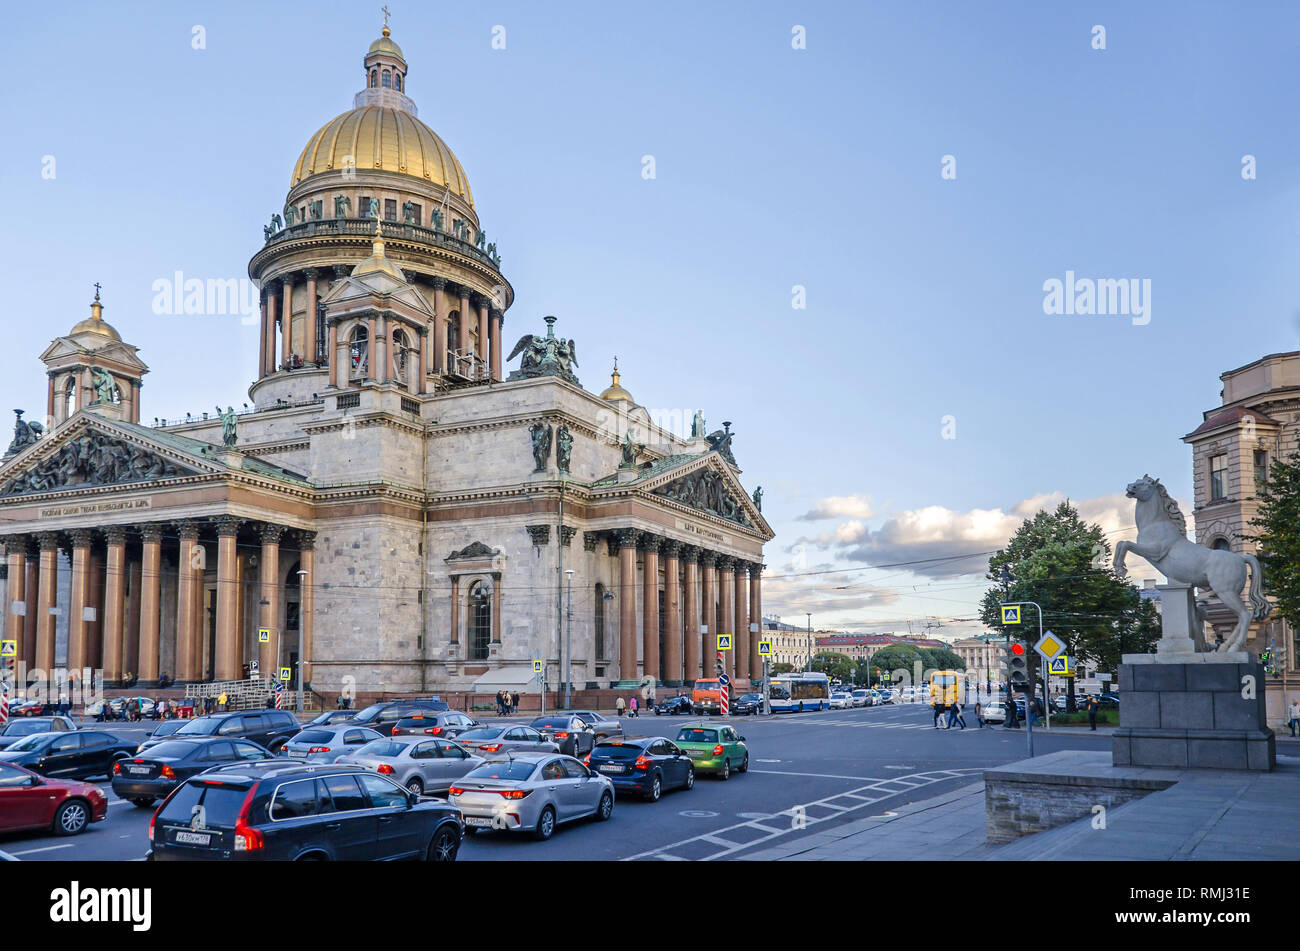 Saint Petersburg, Russia -  September 25, 2018: St Isaac's Square with the Saint Isaac's Cathedral or Isaakievskiy Sobor and a rush hour traffic - Stock Photo